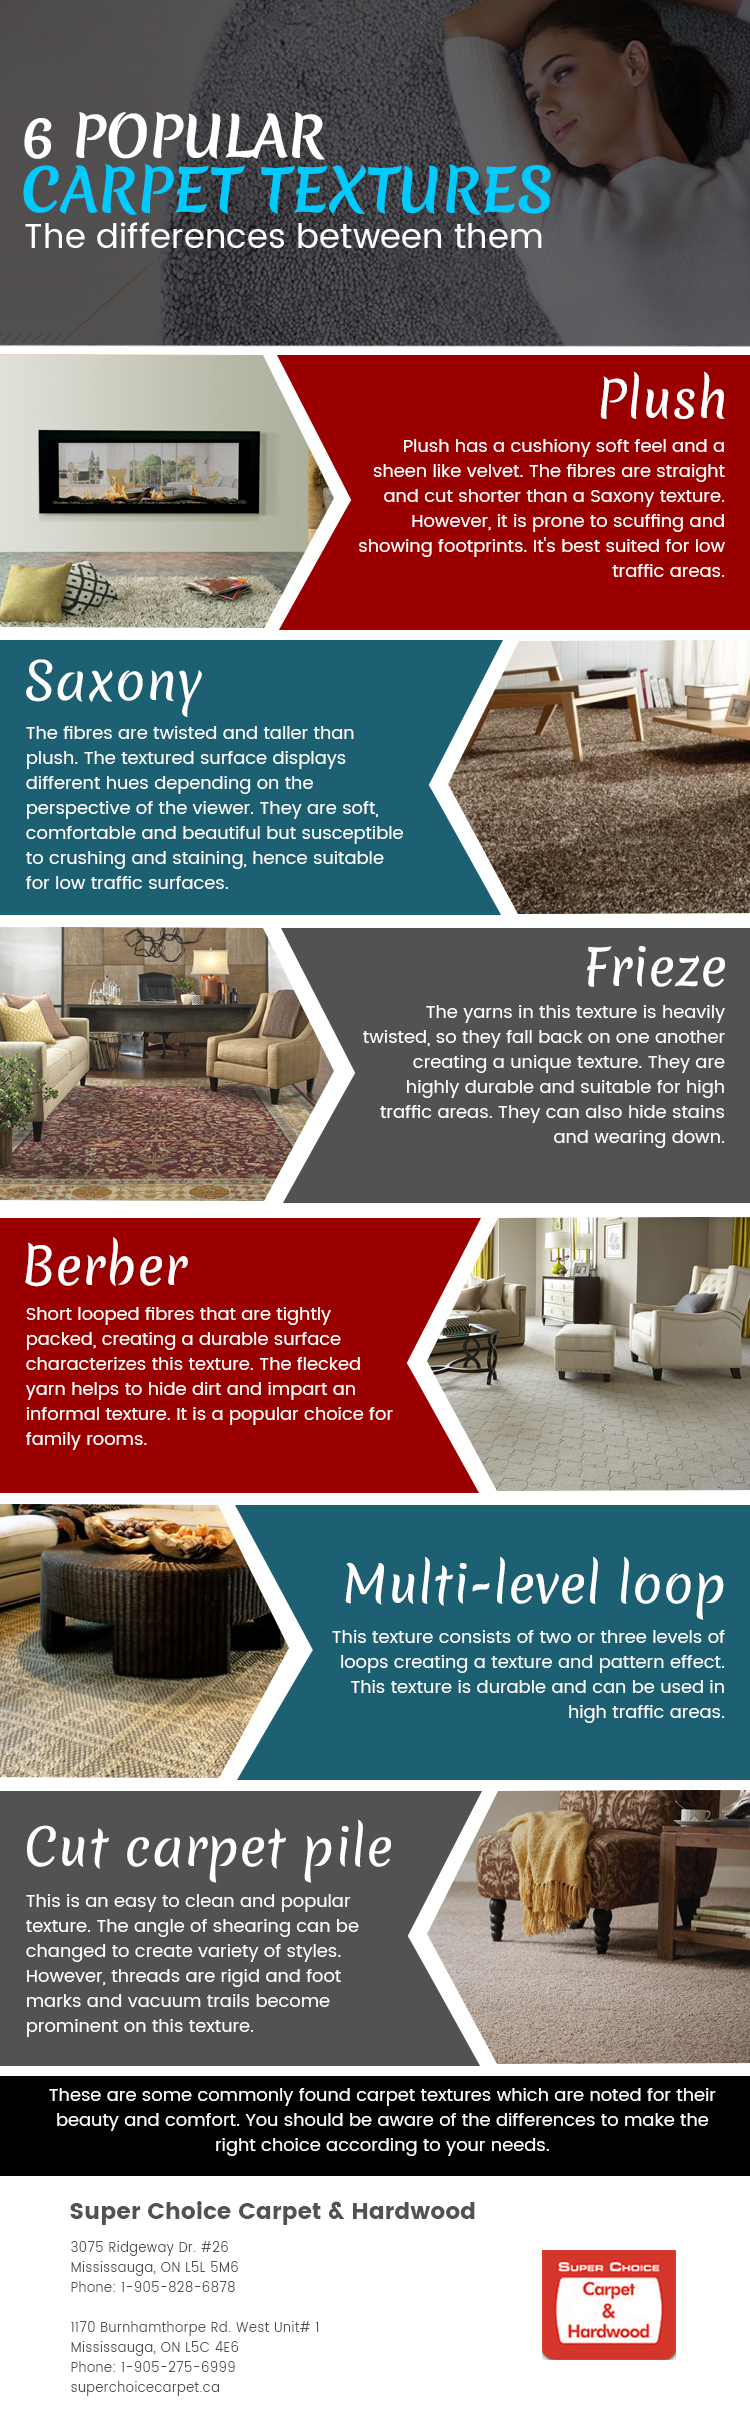 infographic - 6 POPULAR CARPET TEXTURES